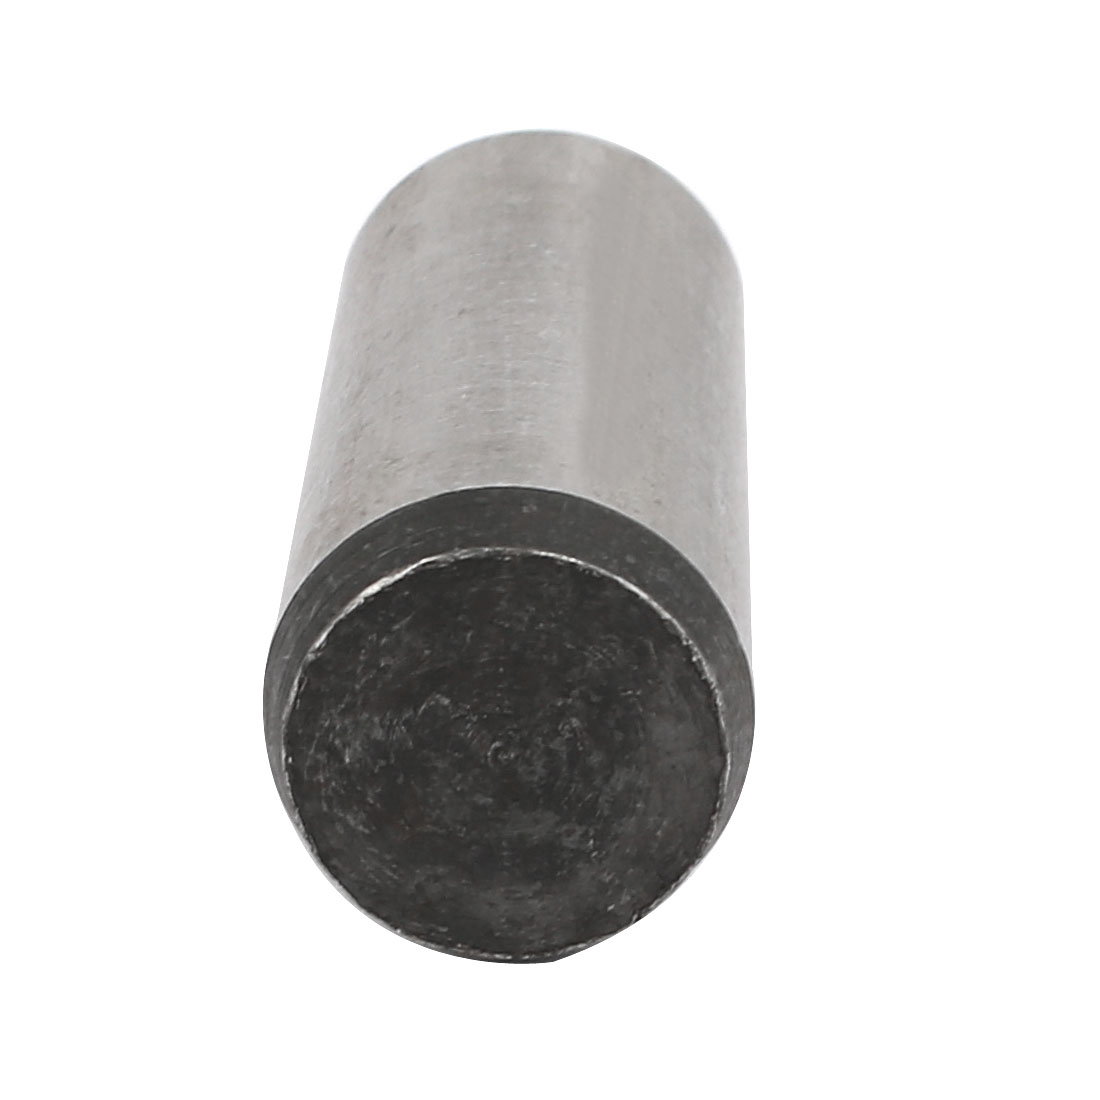 Carbon Steel GB117 45mm Length 16mm Small End Diameter Taper Pin 4pcs - image 1 of 4